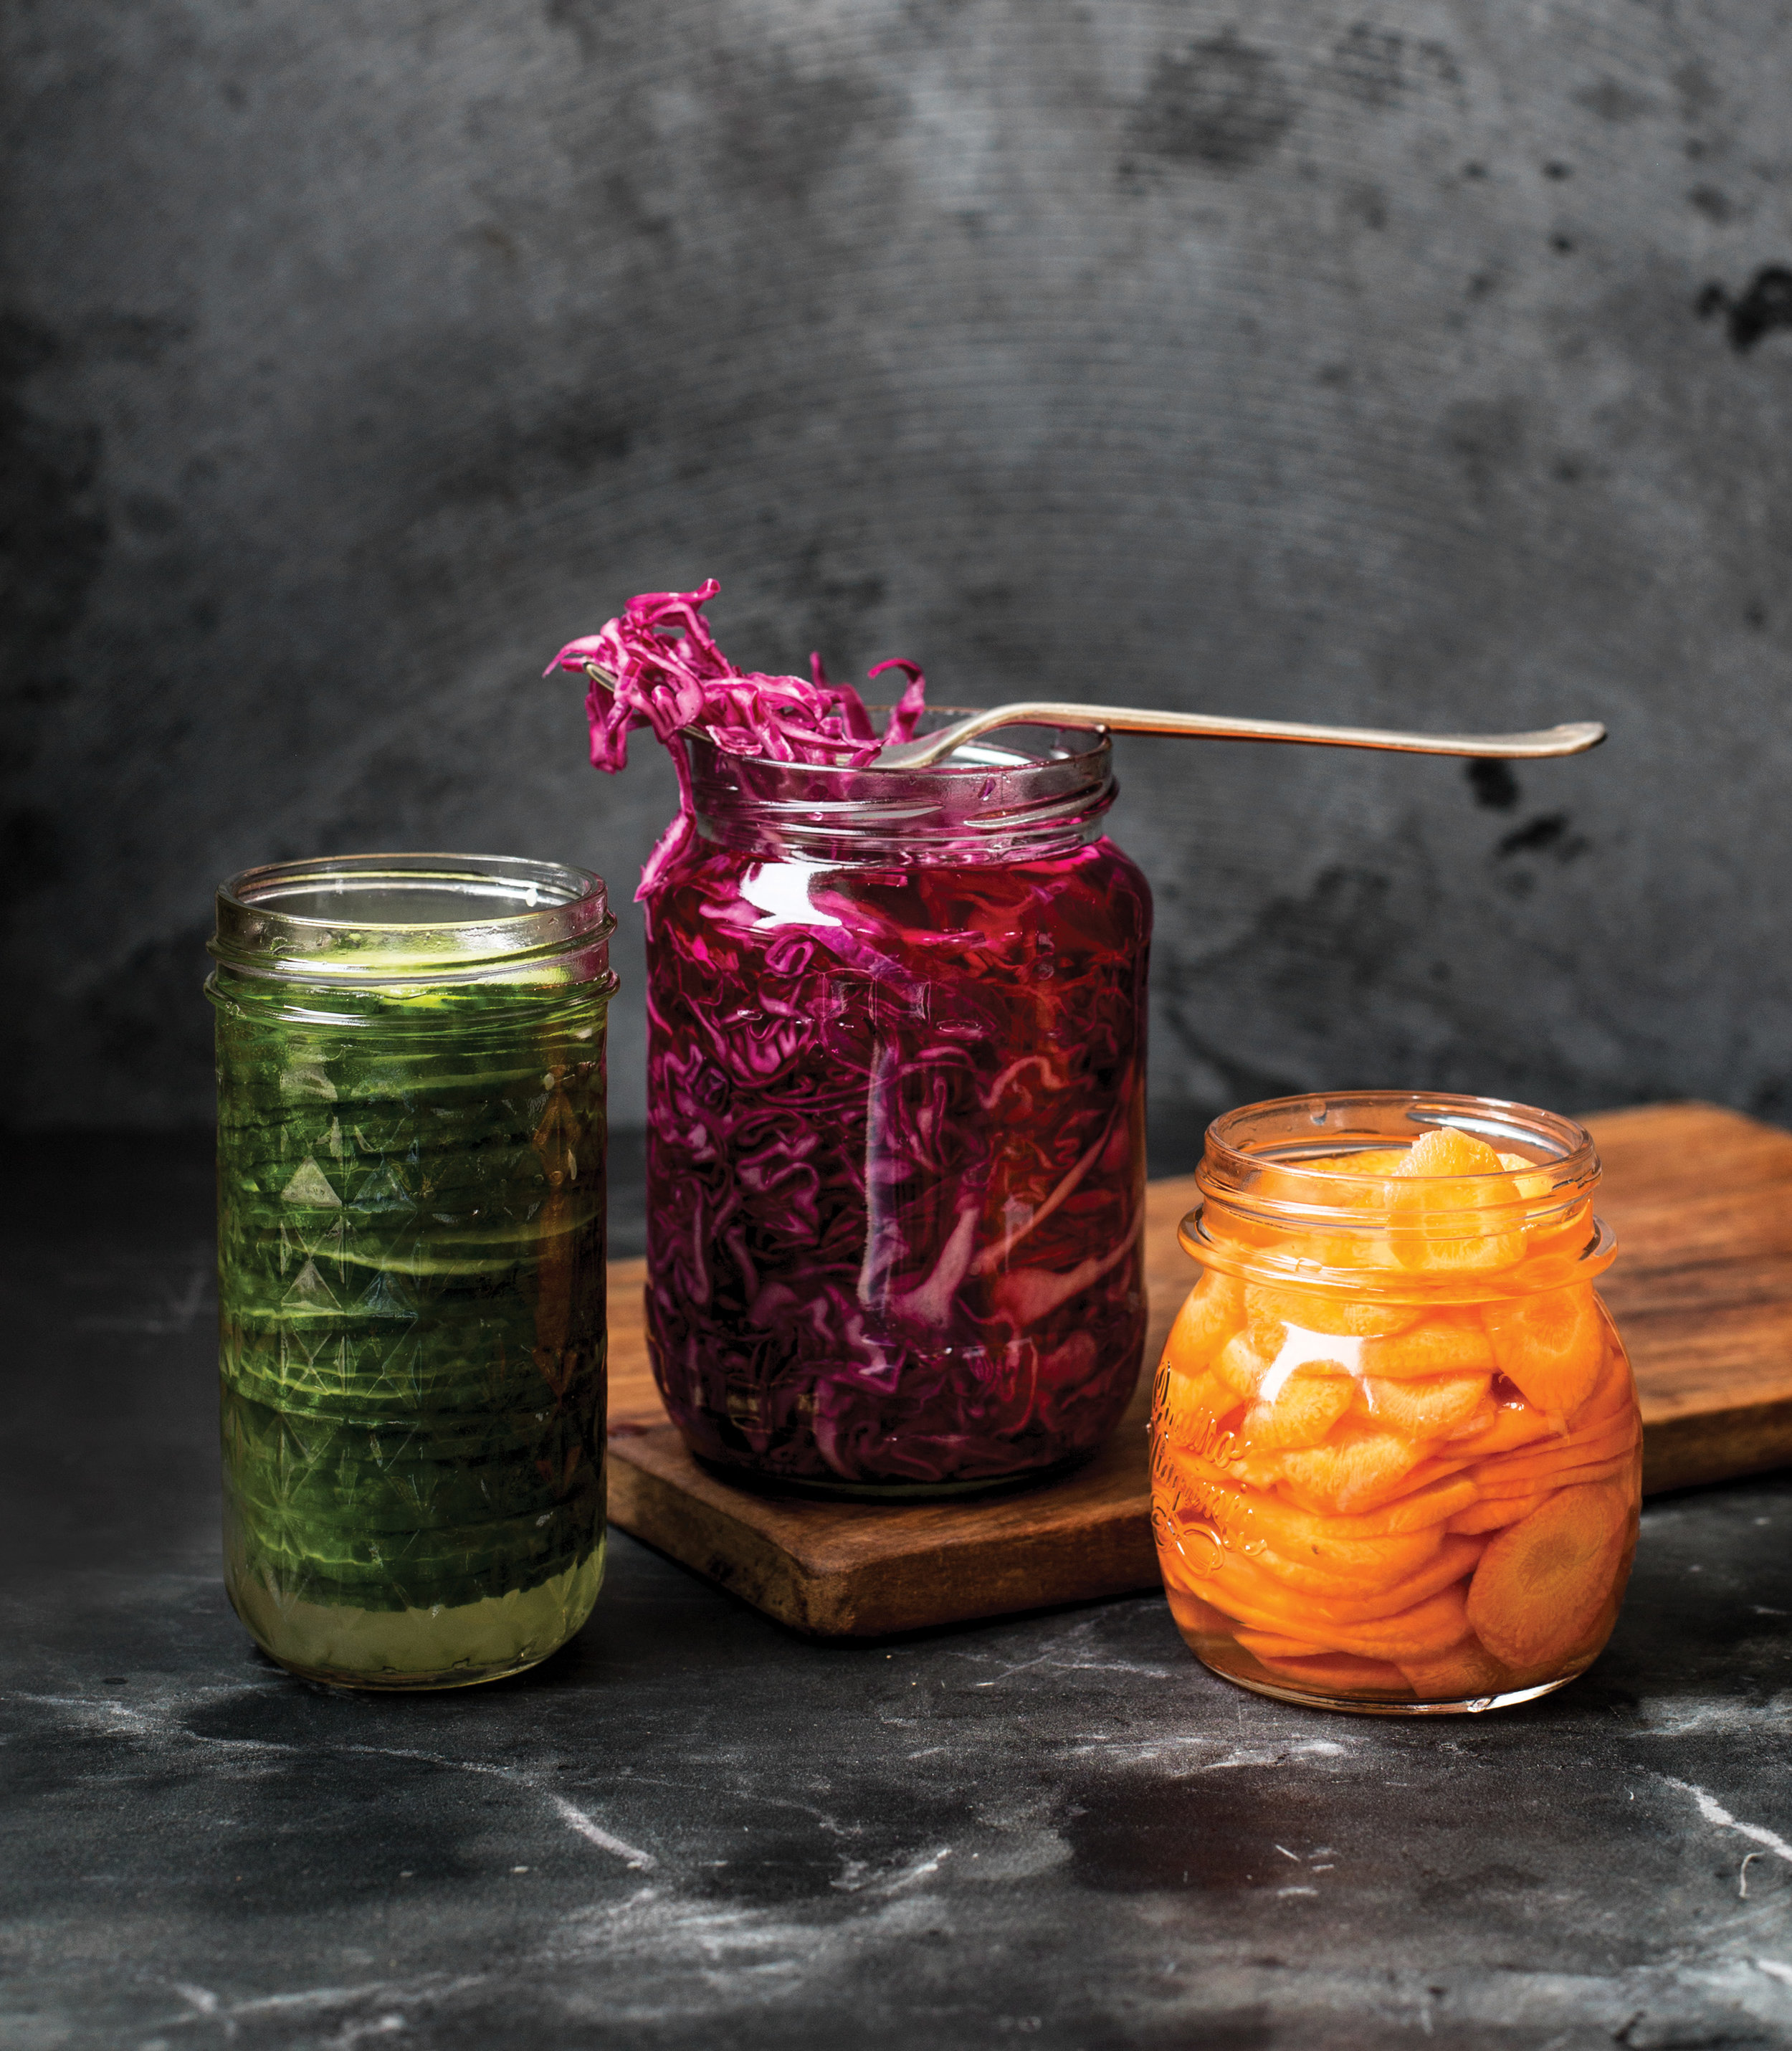 Annabel_Langbein_TOGETHER_PicklingAndFermenting_PicklingImage_PRINT.jpg